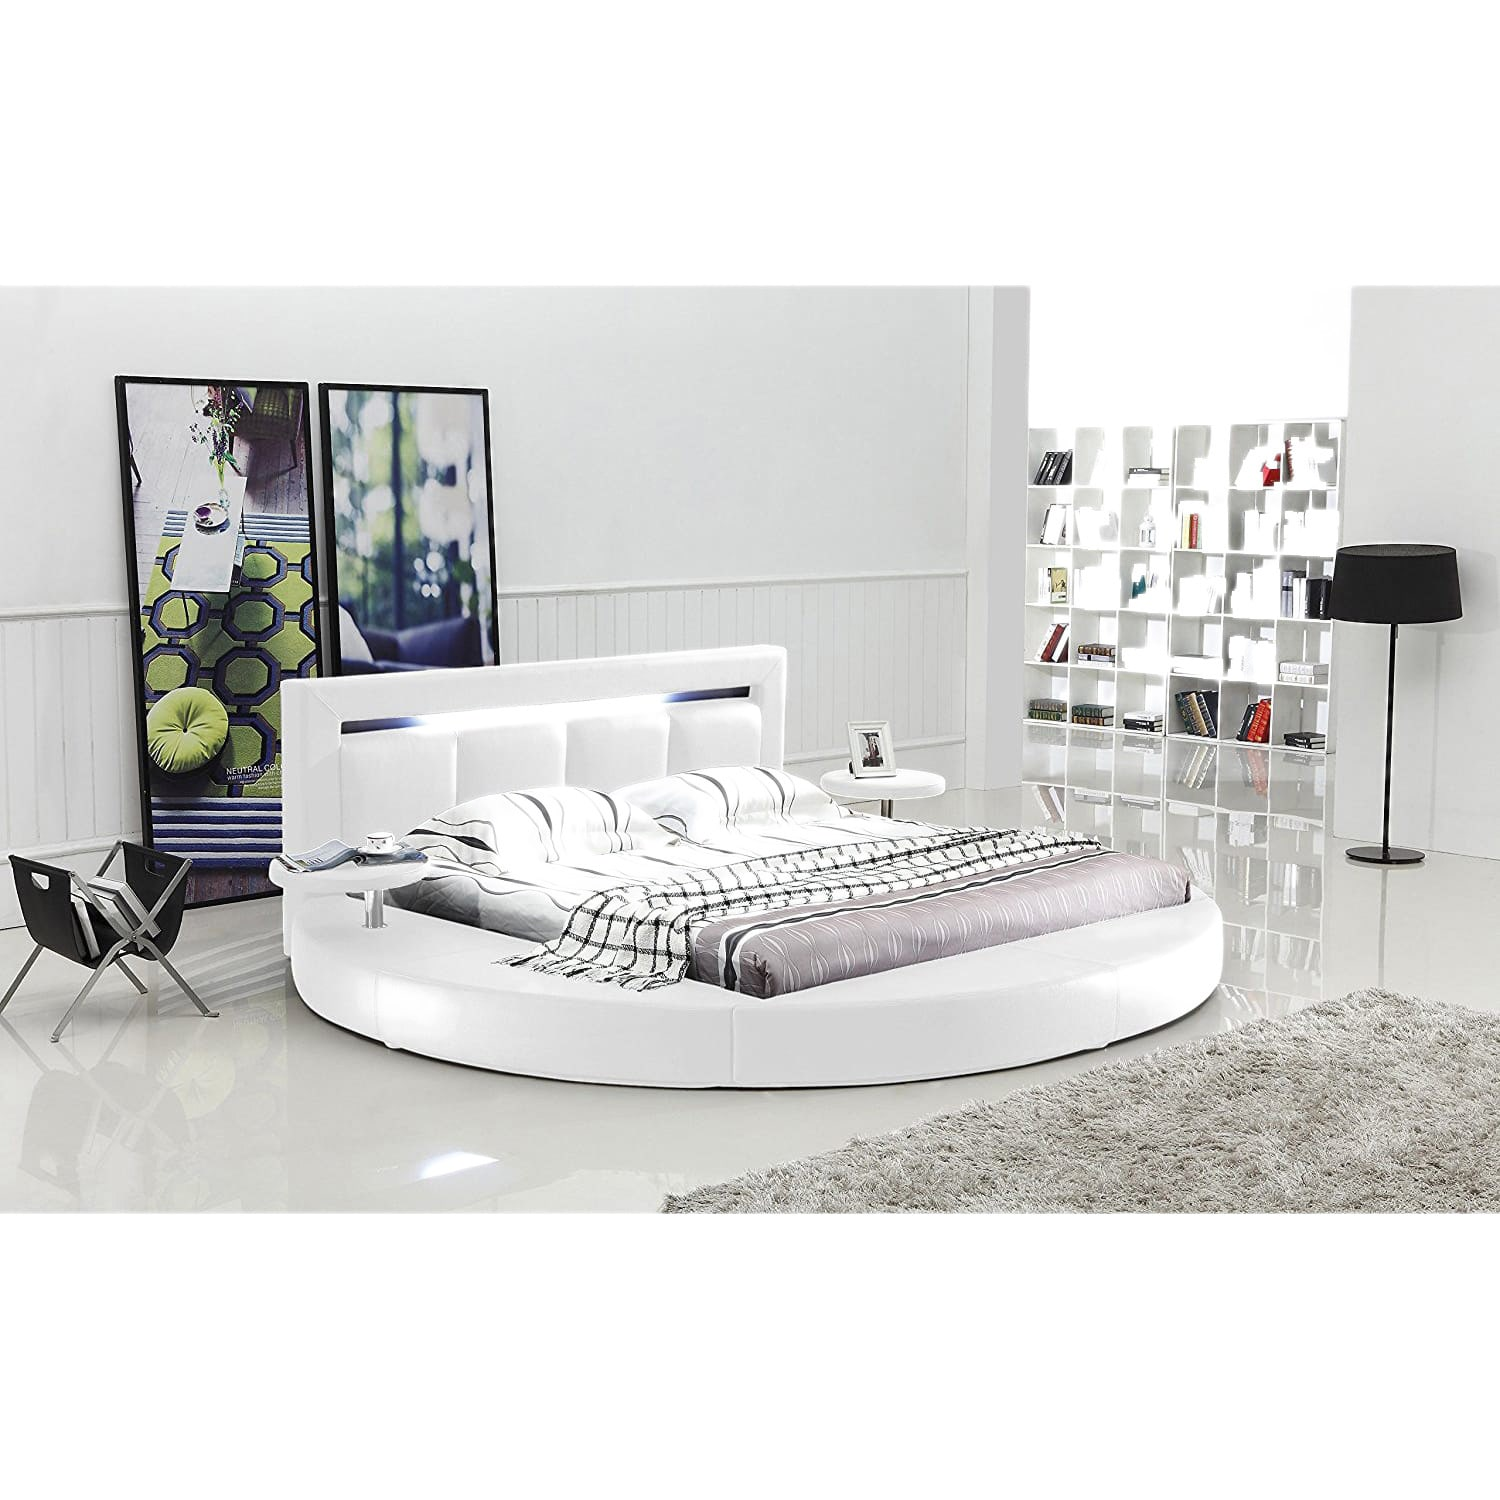 quality round ideas best mattress simple bedroom bed luxury circular dma designer designs beds